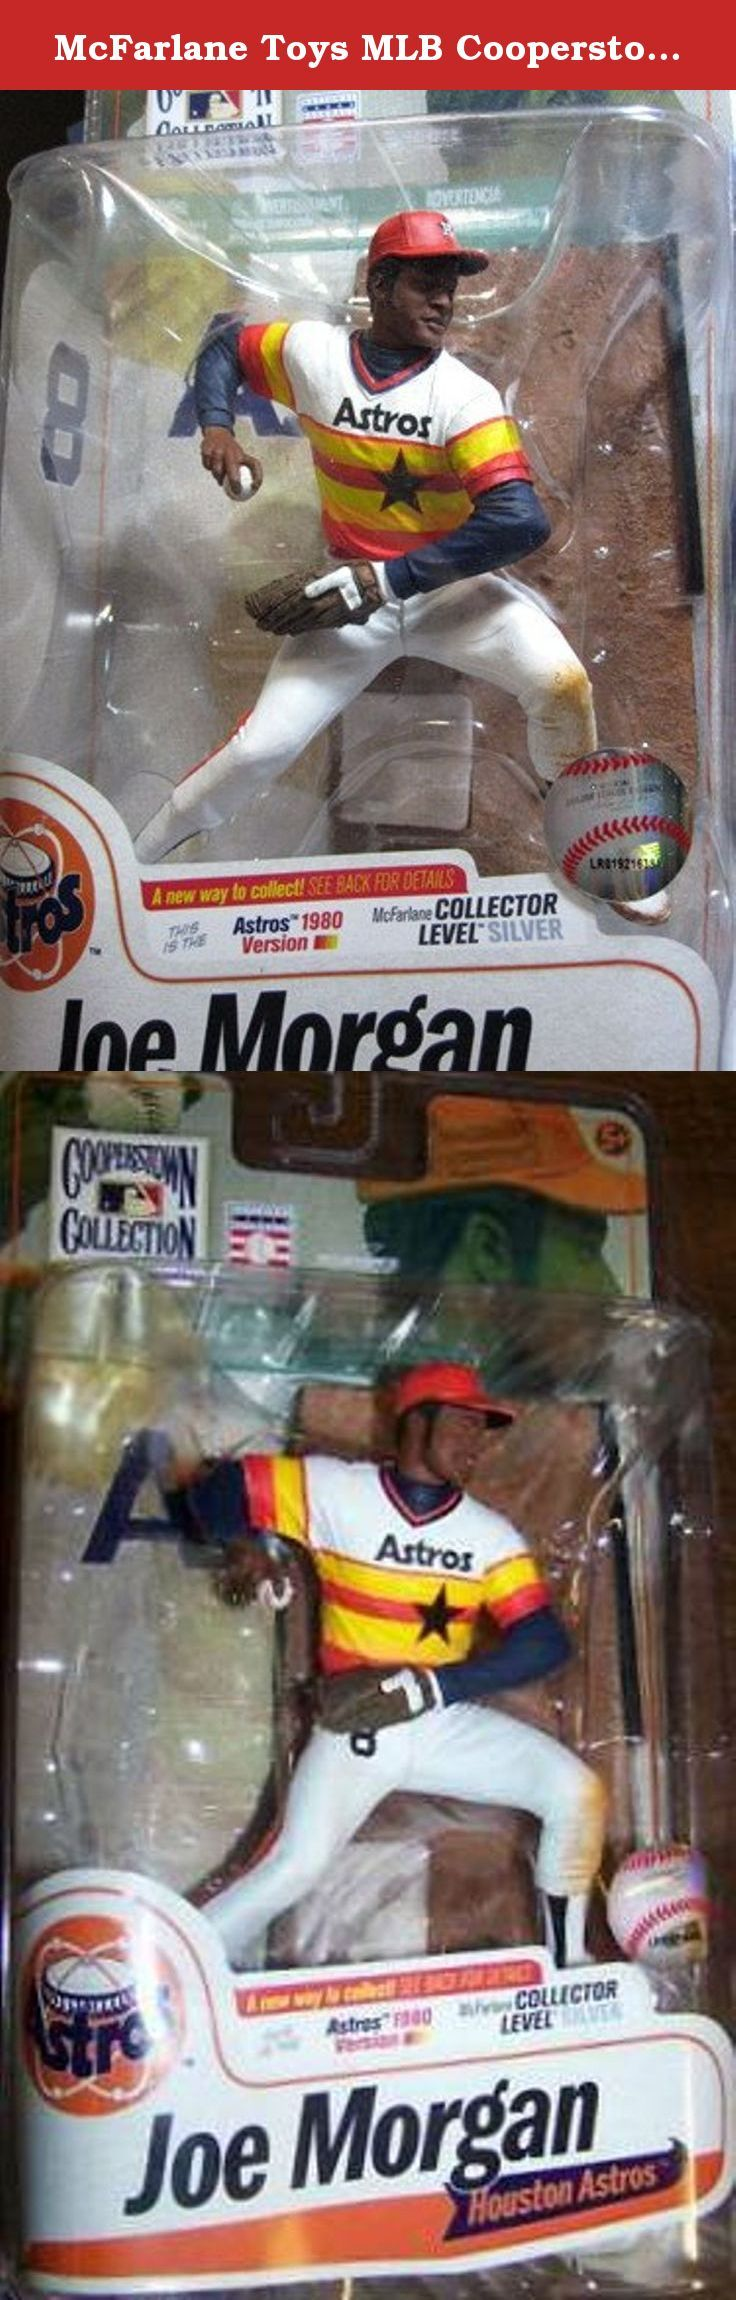 McFarlane Toys MLB Cooperstown Series 7 Action Figure Joe Morgan (Houston Astros) Rainbow Jersey Silver Collector Level Chase. Morgan was traded to the Cincinnati Reds as part of a blockbuster multiplayer deal on November 29, 1971, announced at baseballs winter meetings. Morgan is now one of the broadcasters for ESPNs Sunday Night Baseball, along with Jon Miller. He is highly regarded as one of the greatest second baseman in baseball history.